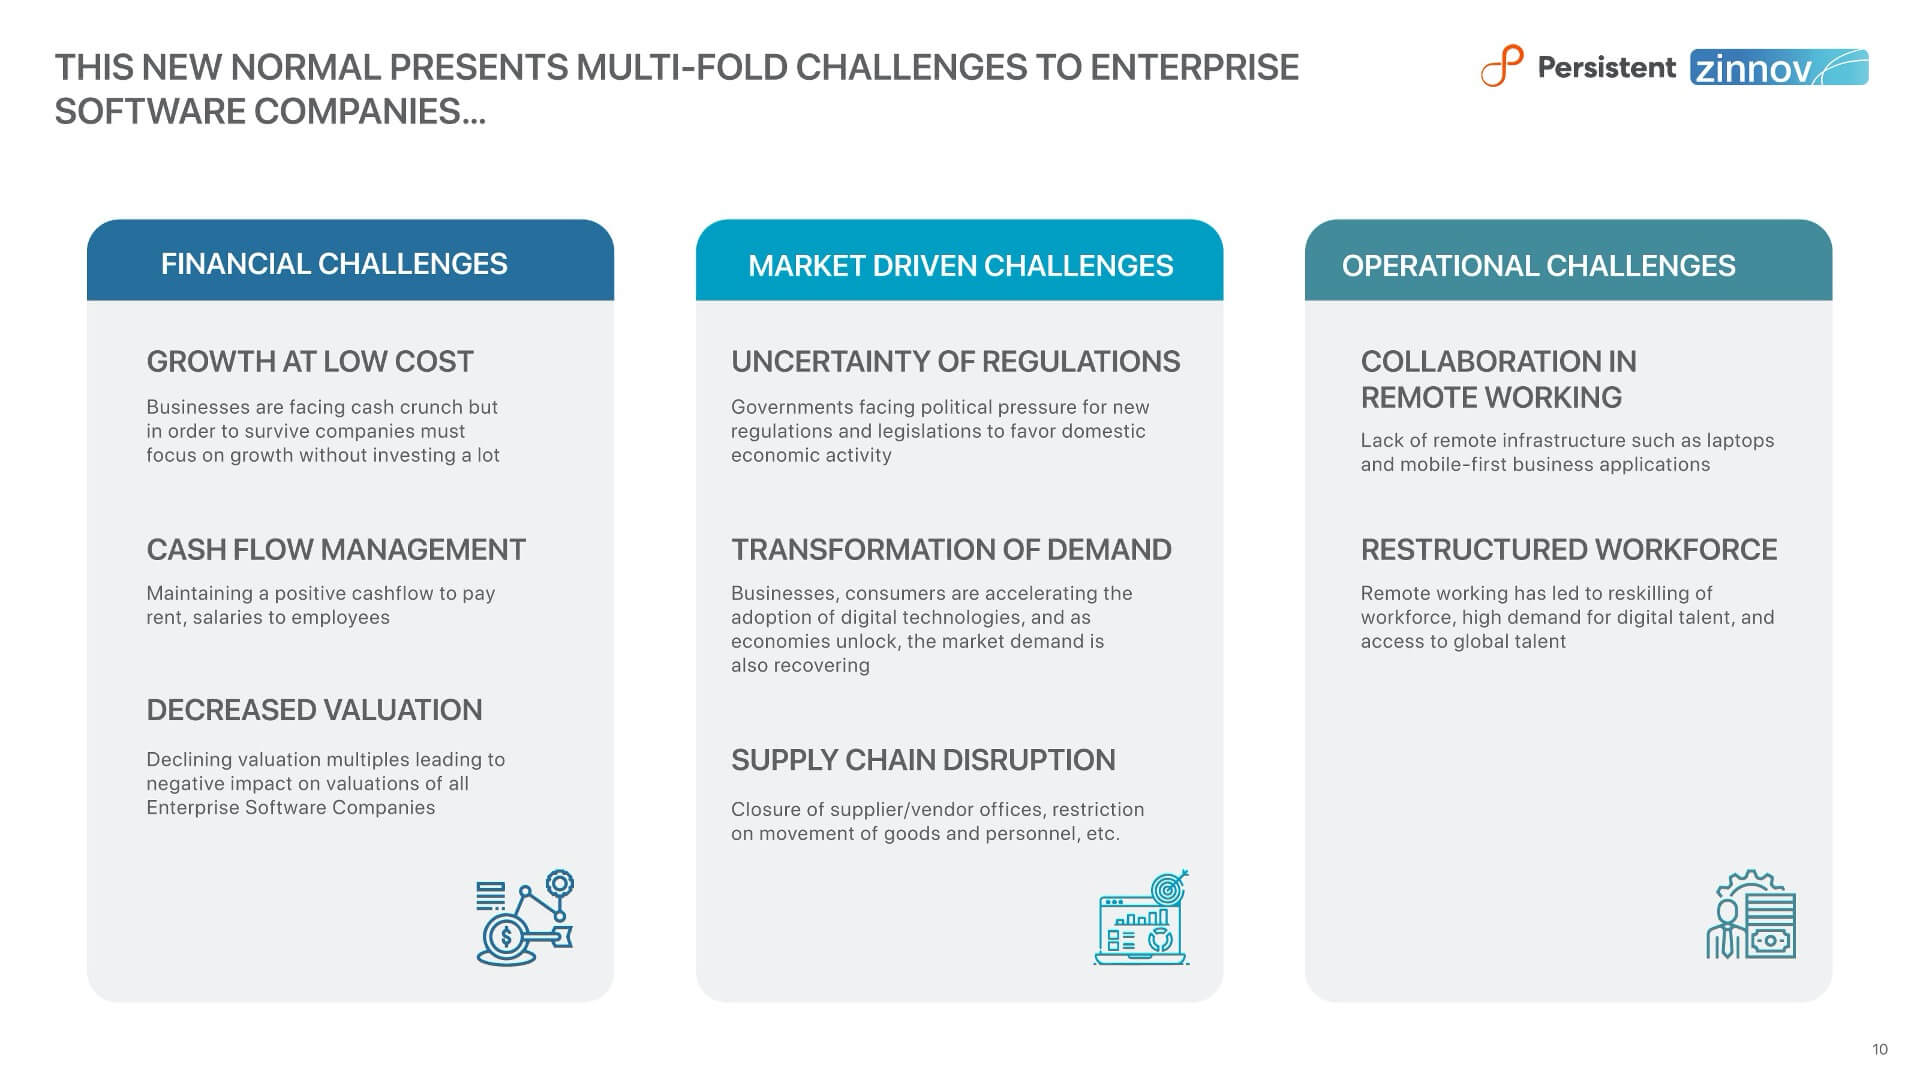 Venture Capital Investments In Enterprise Software